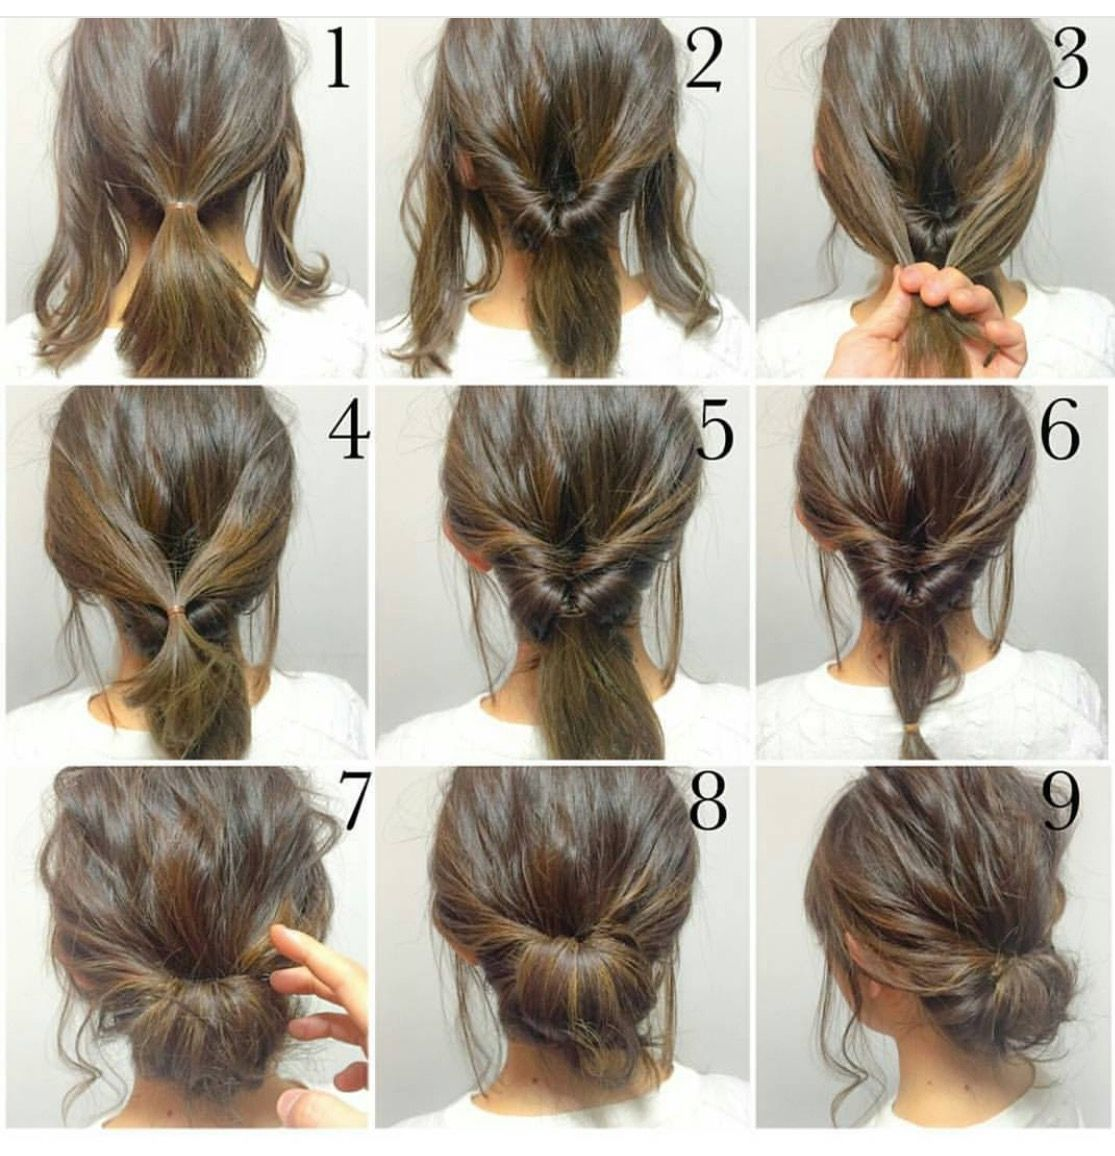 Updo Hairstyles For Long Hair Best 4 Messy Updos For Long Hair  Hairz  Pinterest  Updos Hair Style